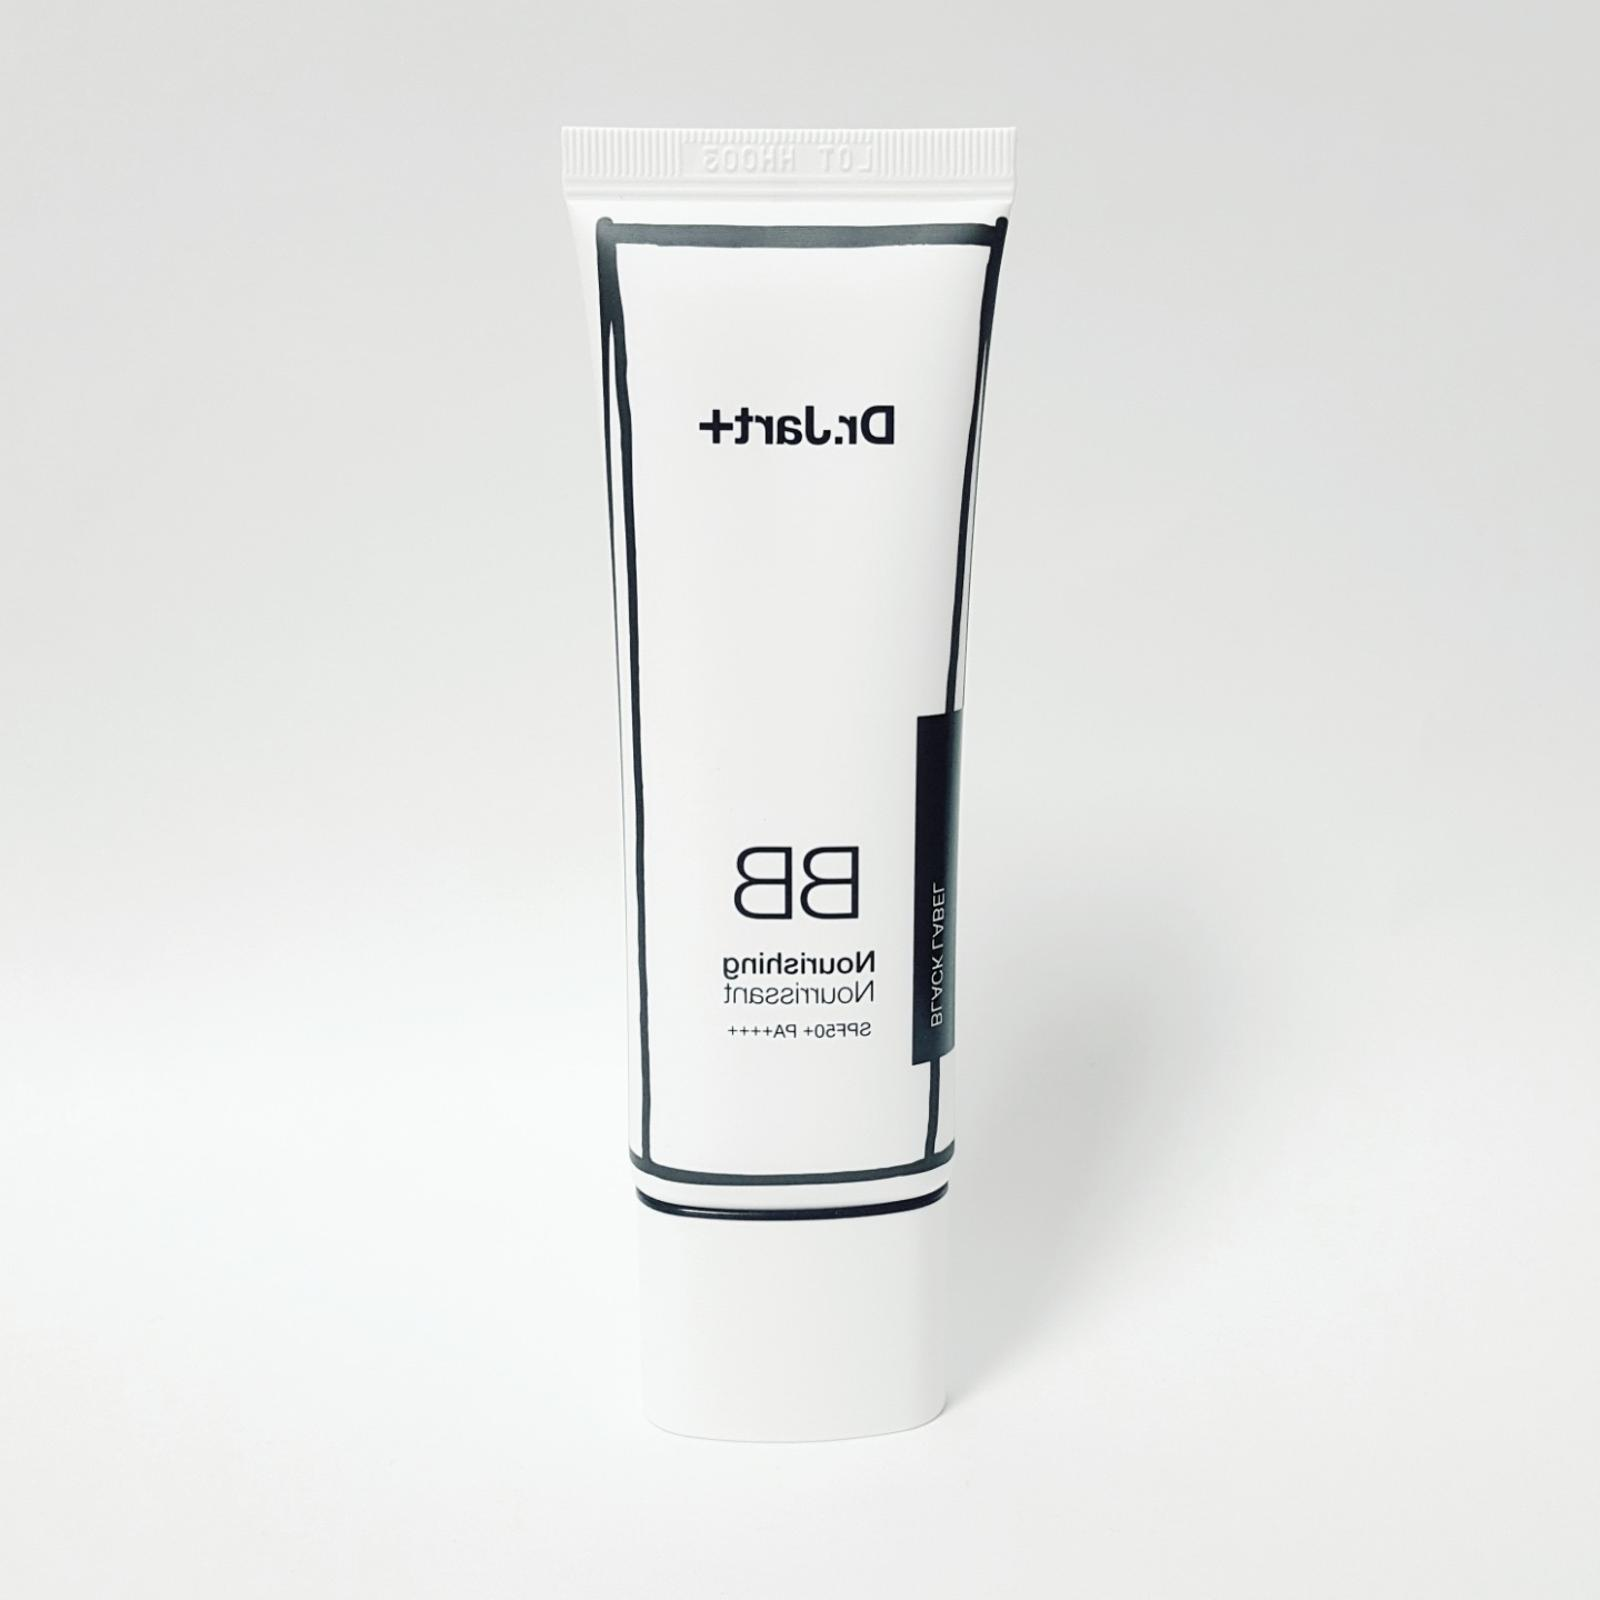 BB Cream balm label